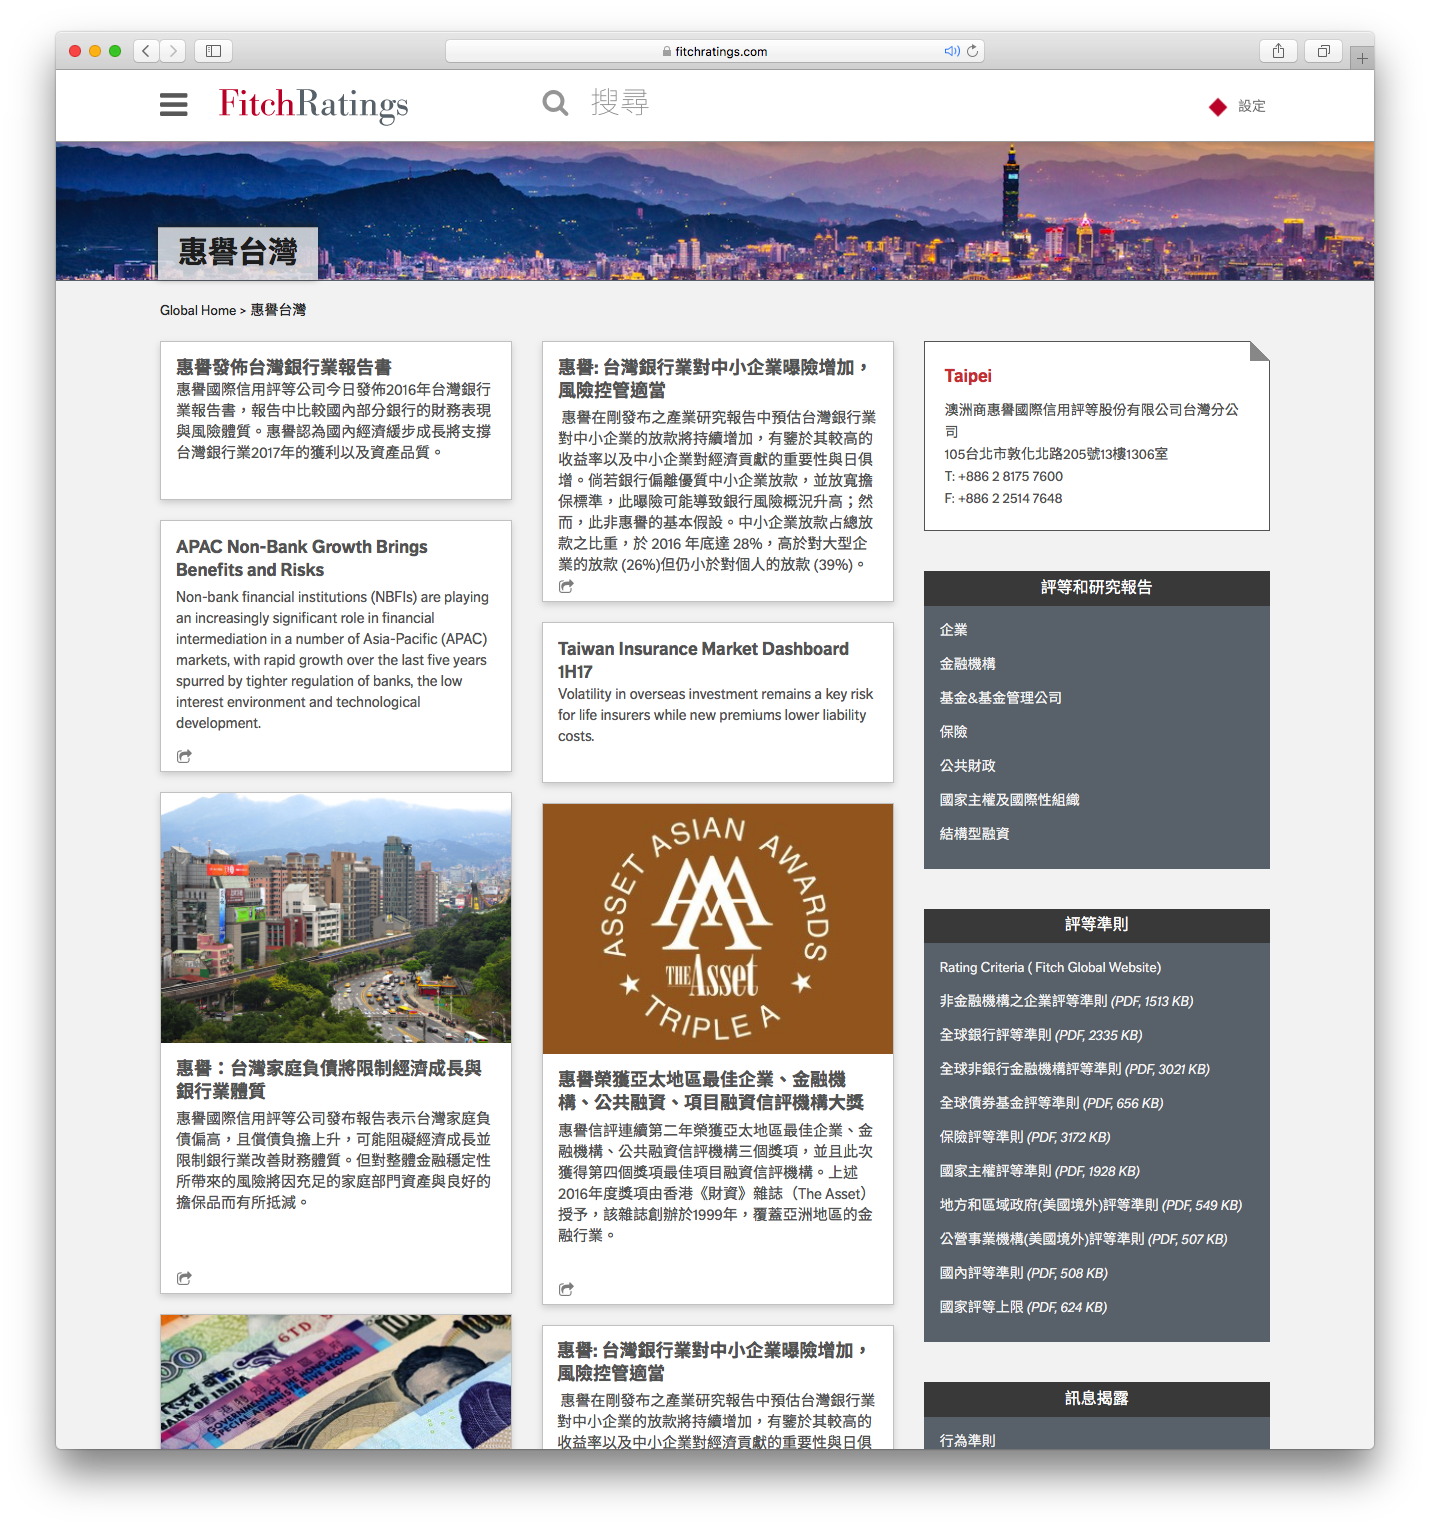 Fitch Ratings Taiwan - fitchratings.com